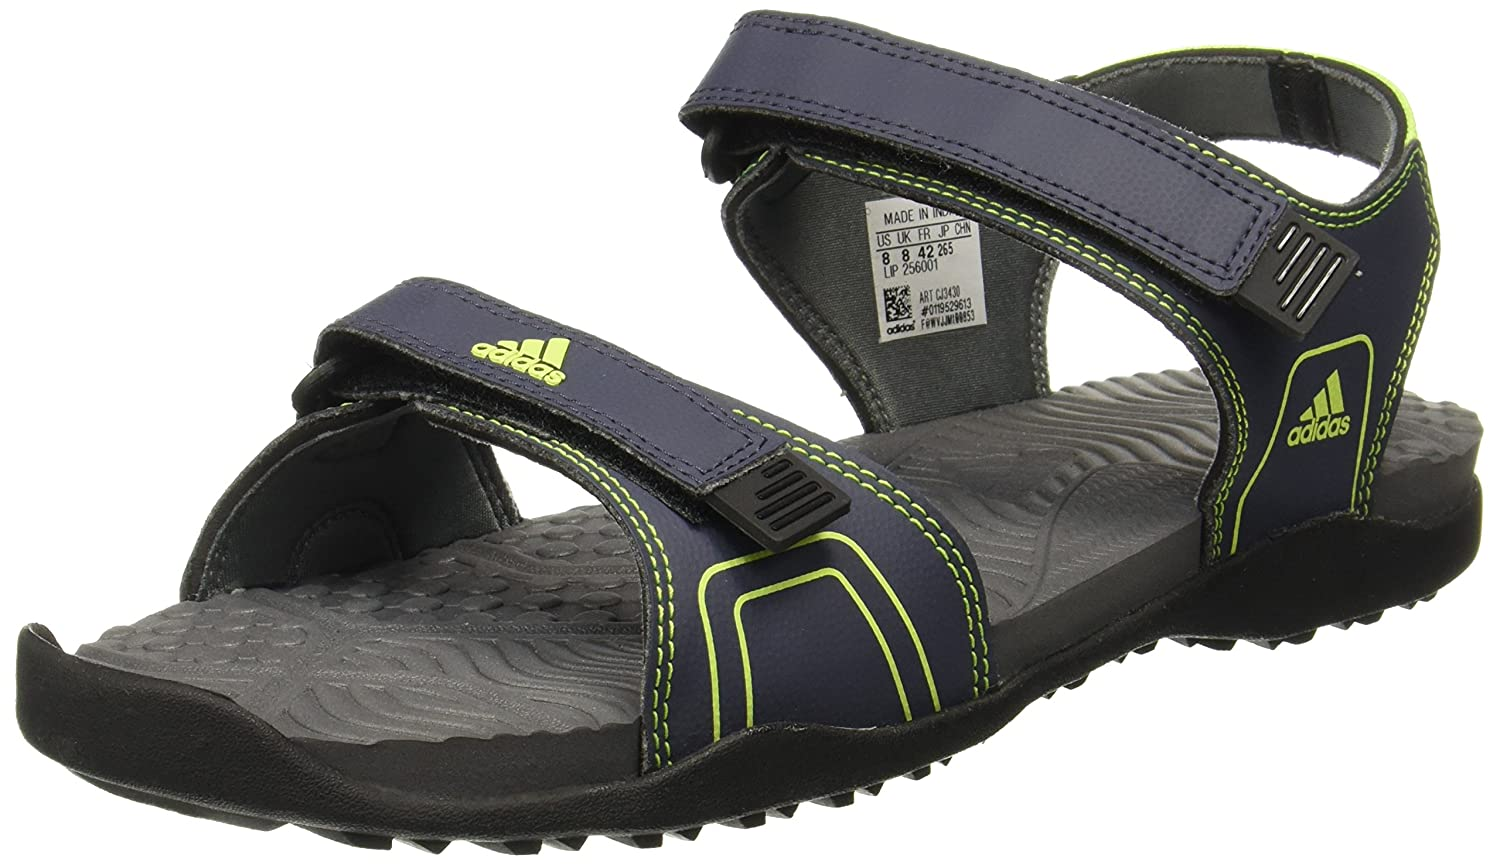 91875f5af Adidas Men s Gempen M Trablu Syello Visgre Sandals-10 UK India (44 2 3 EU)  (CJ3430)  Buy Online at Low Prices in India - Amazon.in